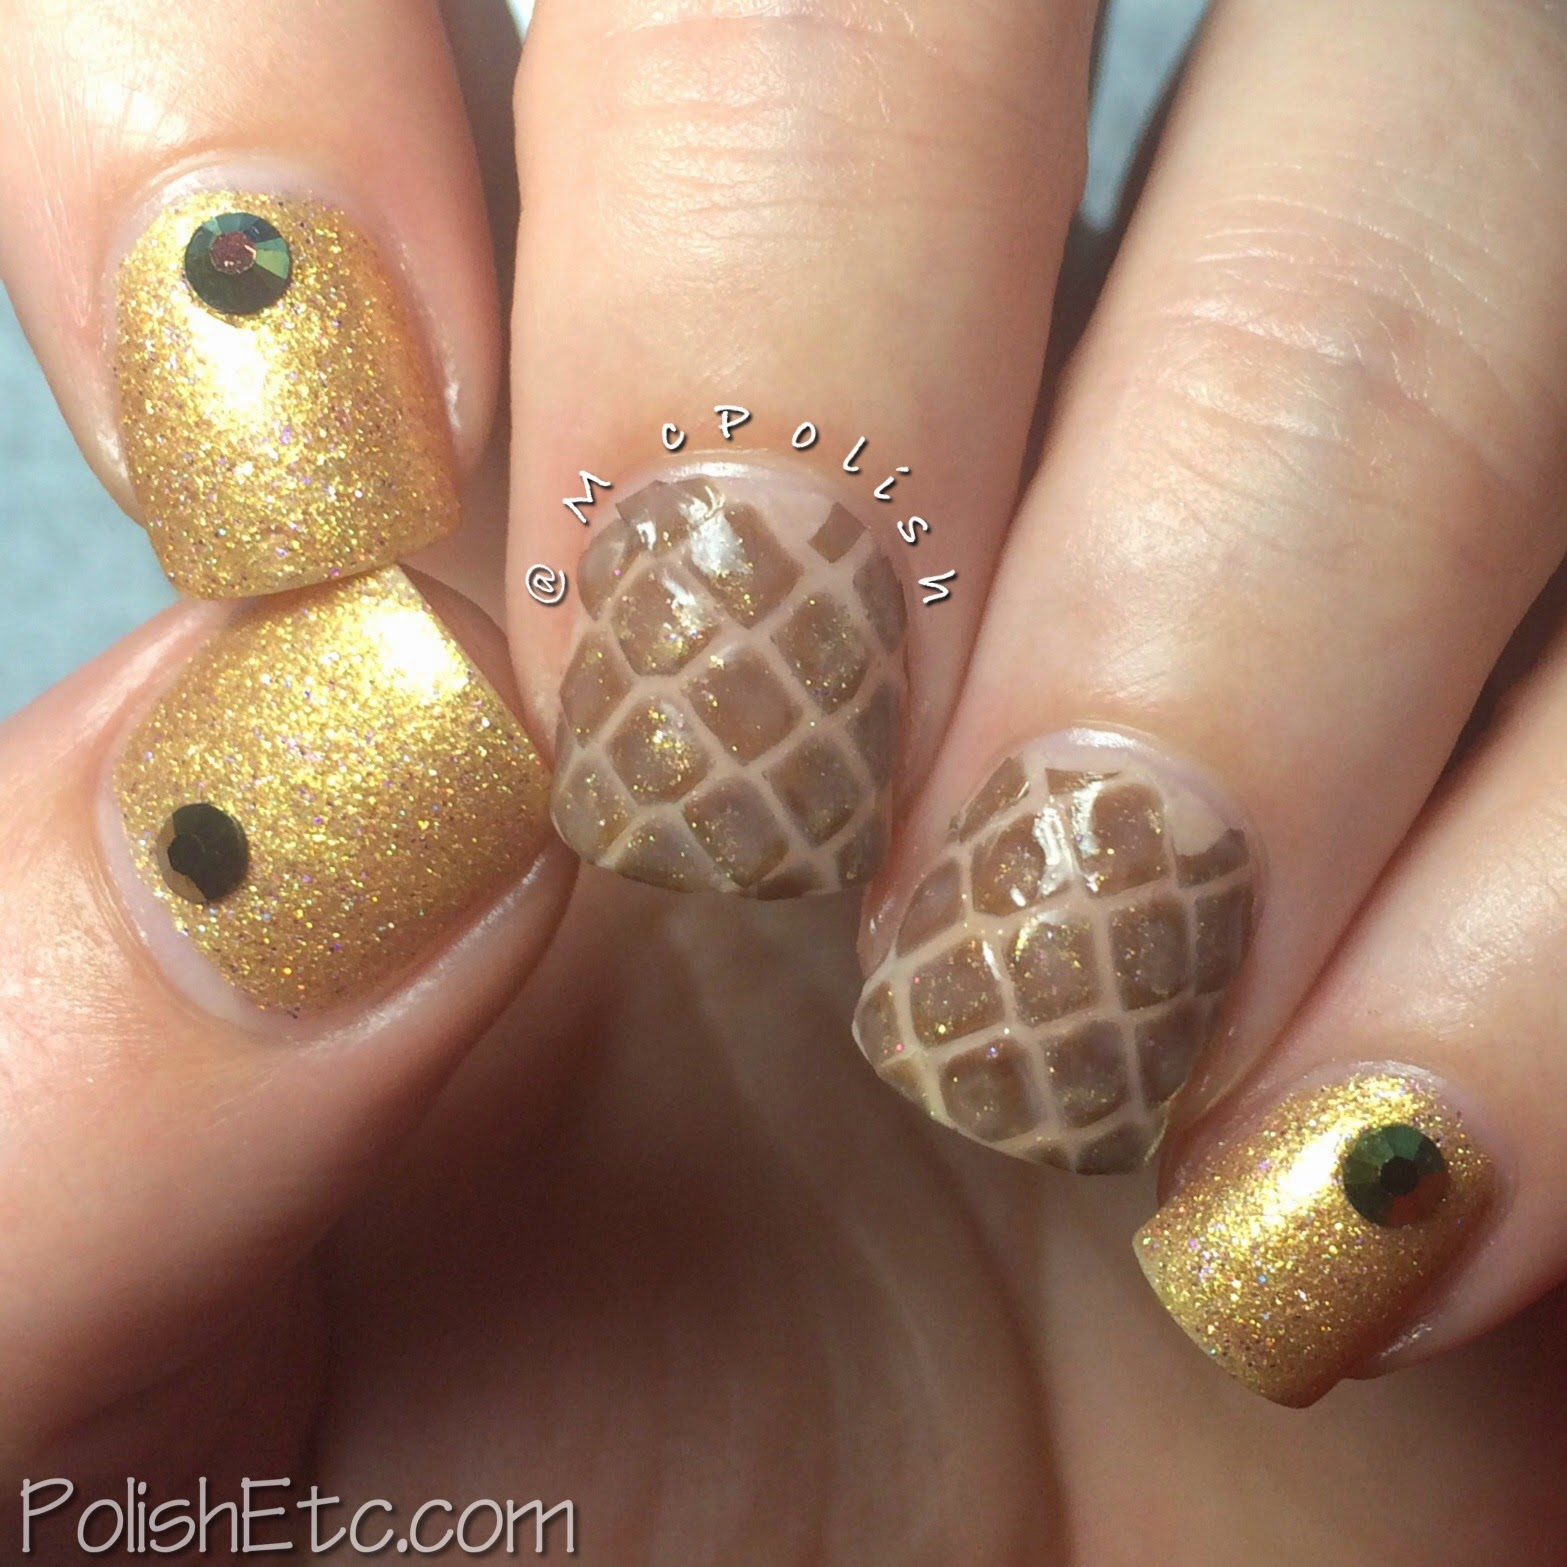 31 Day Nail Art Challenge - #31dc2014 - McPolish - ANIMAL PRINT